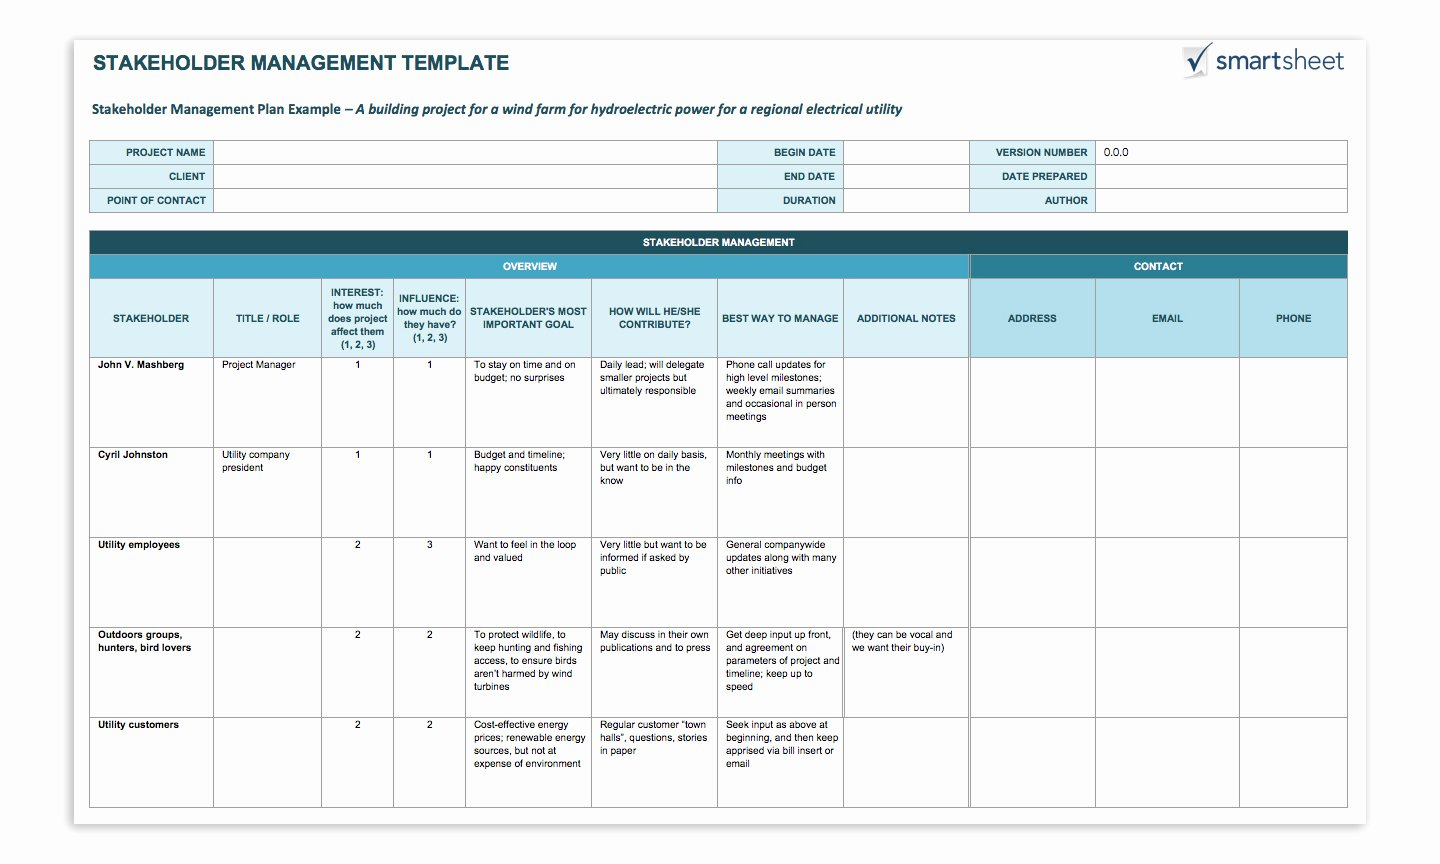 Stakeholder Analysis Template Excel Unique How to Create A Stakeholder Management Plan Smartsheet